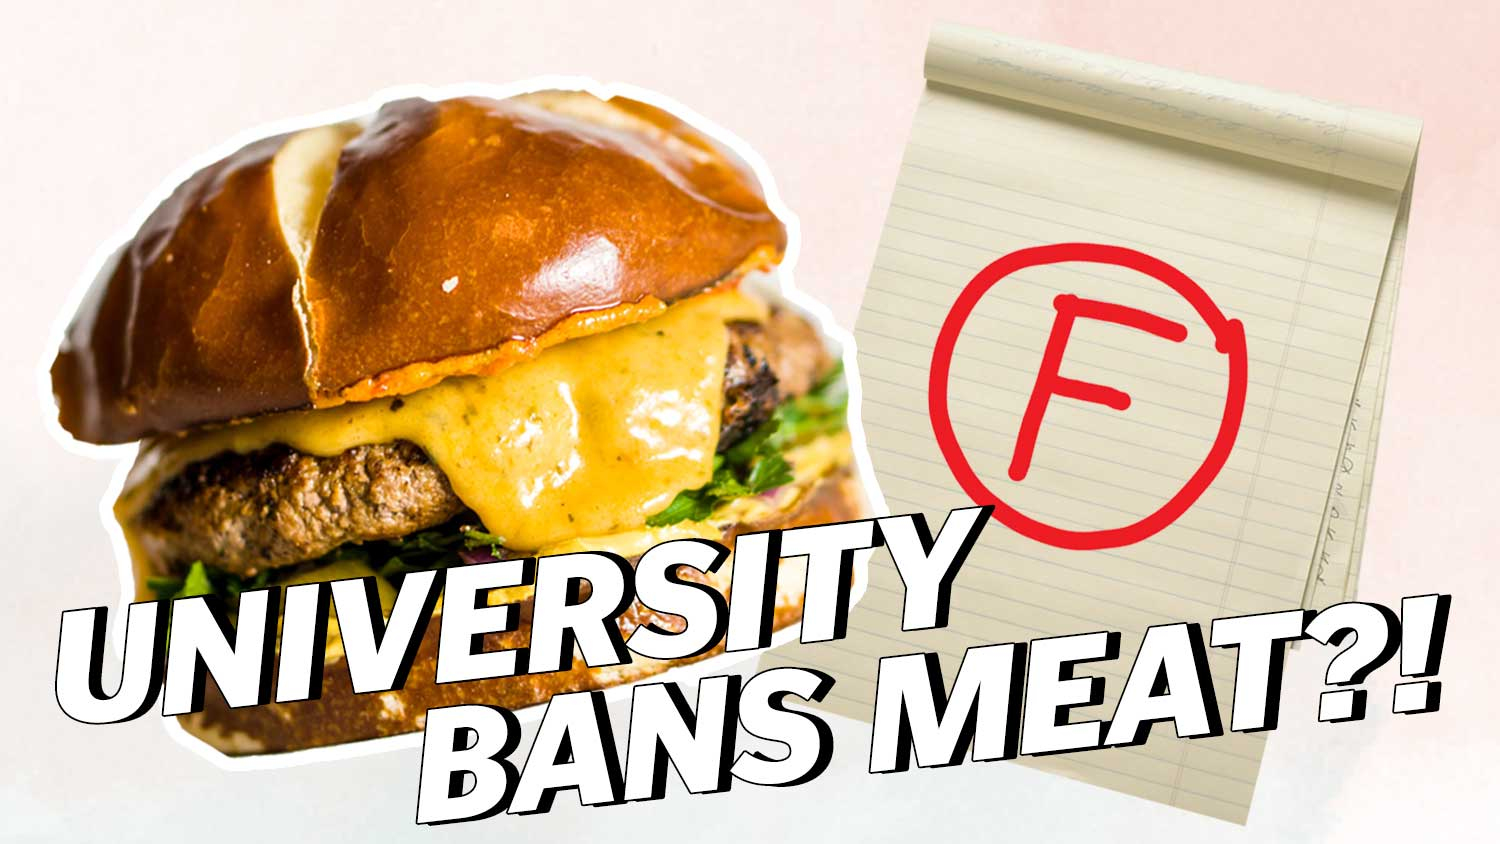 This University Just Banned Beef